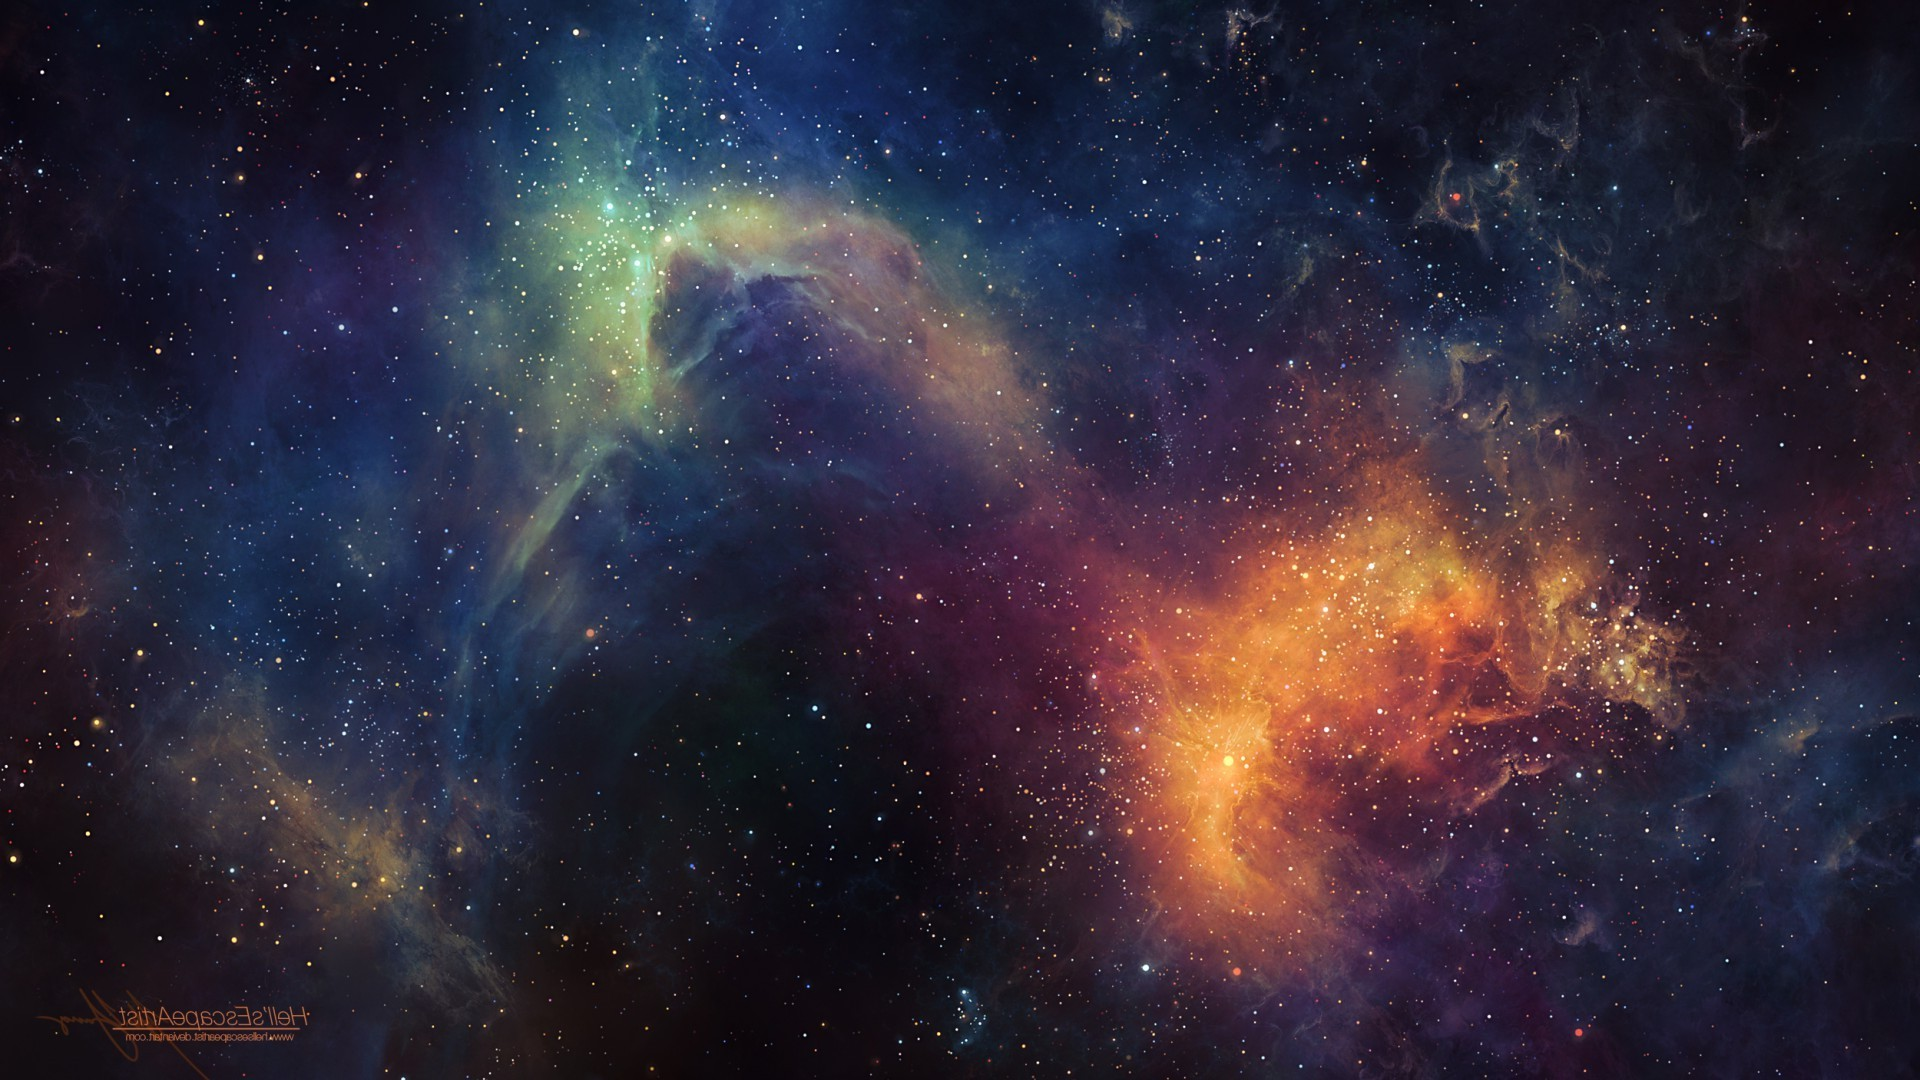 Space wallpaper 1366x768 77 pictures for Space wallpaper 1366x768